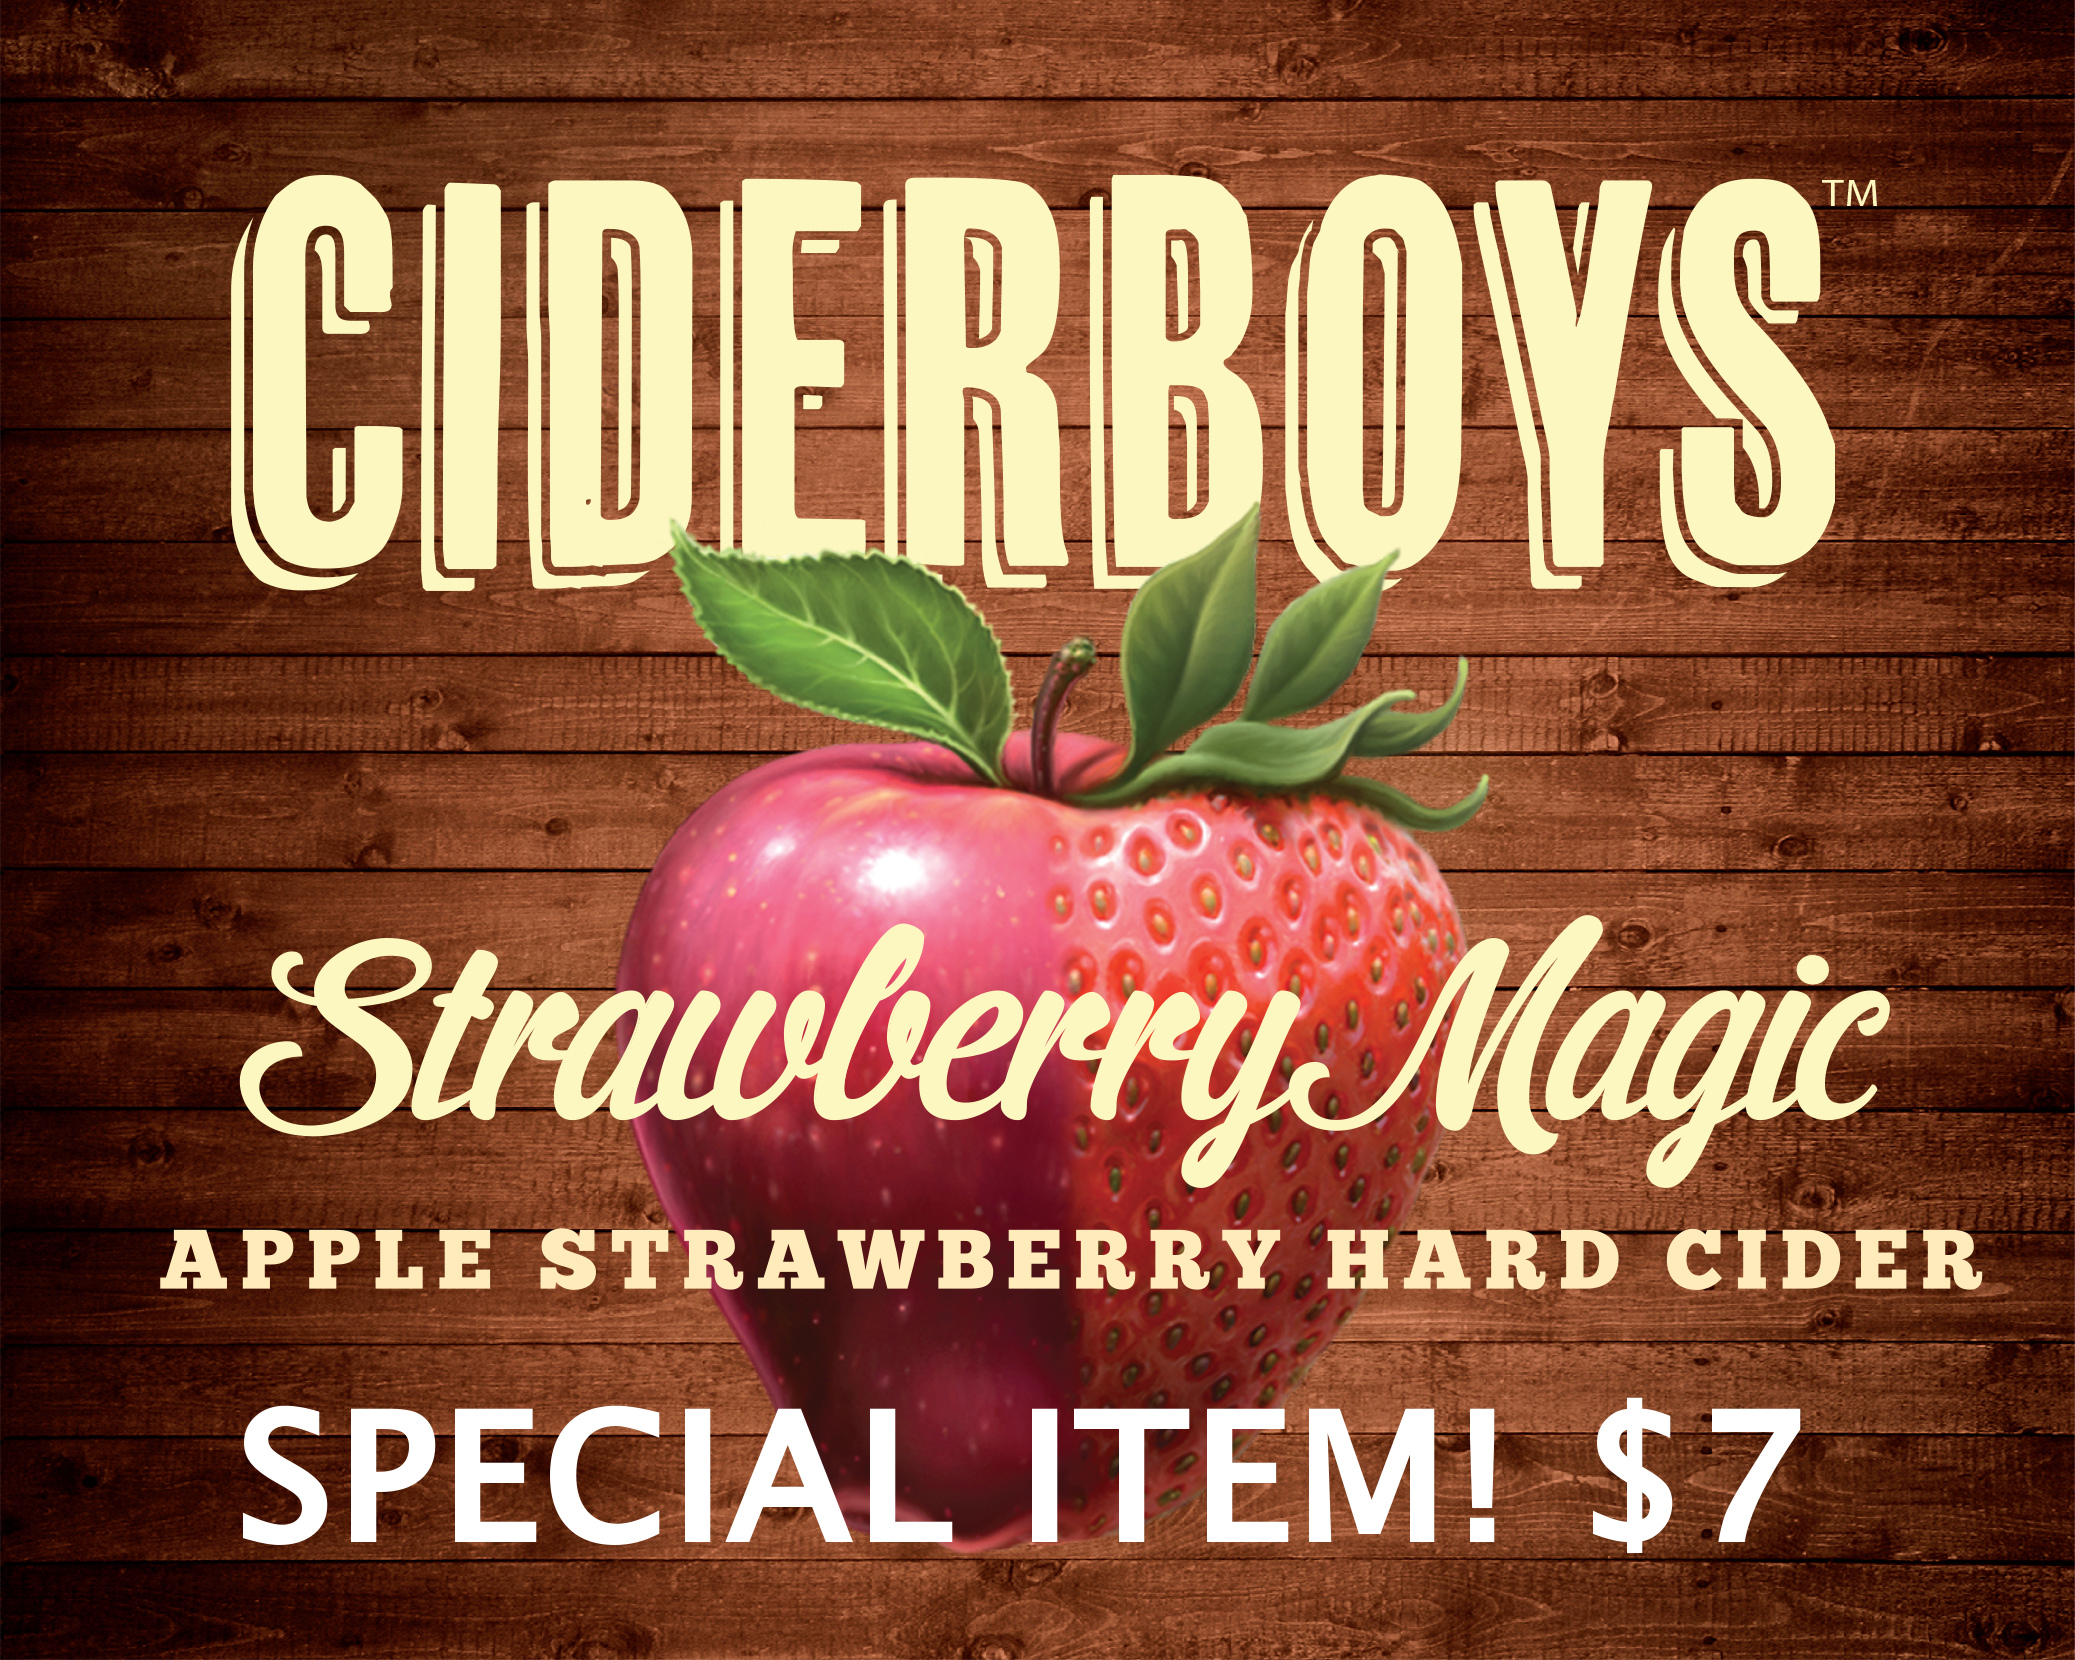 Ciderboys Strawberry Magic 7 bucks.jpg